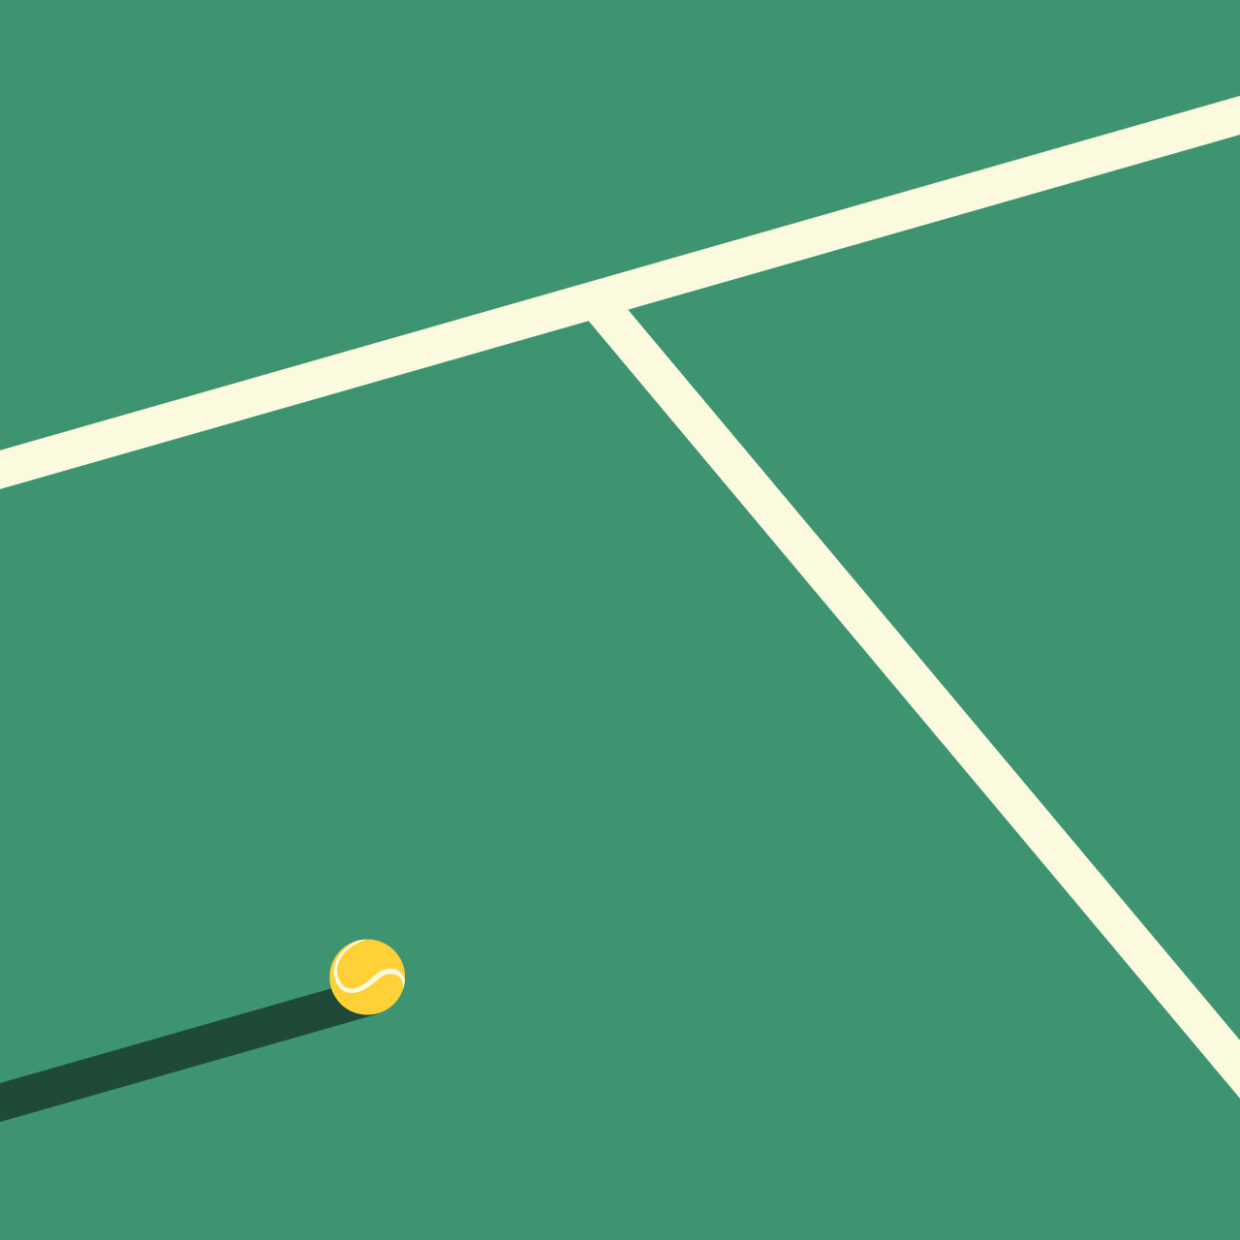 Illustration of a tennis court symbolizing the letter T